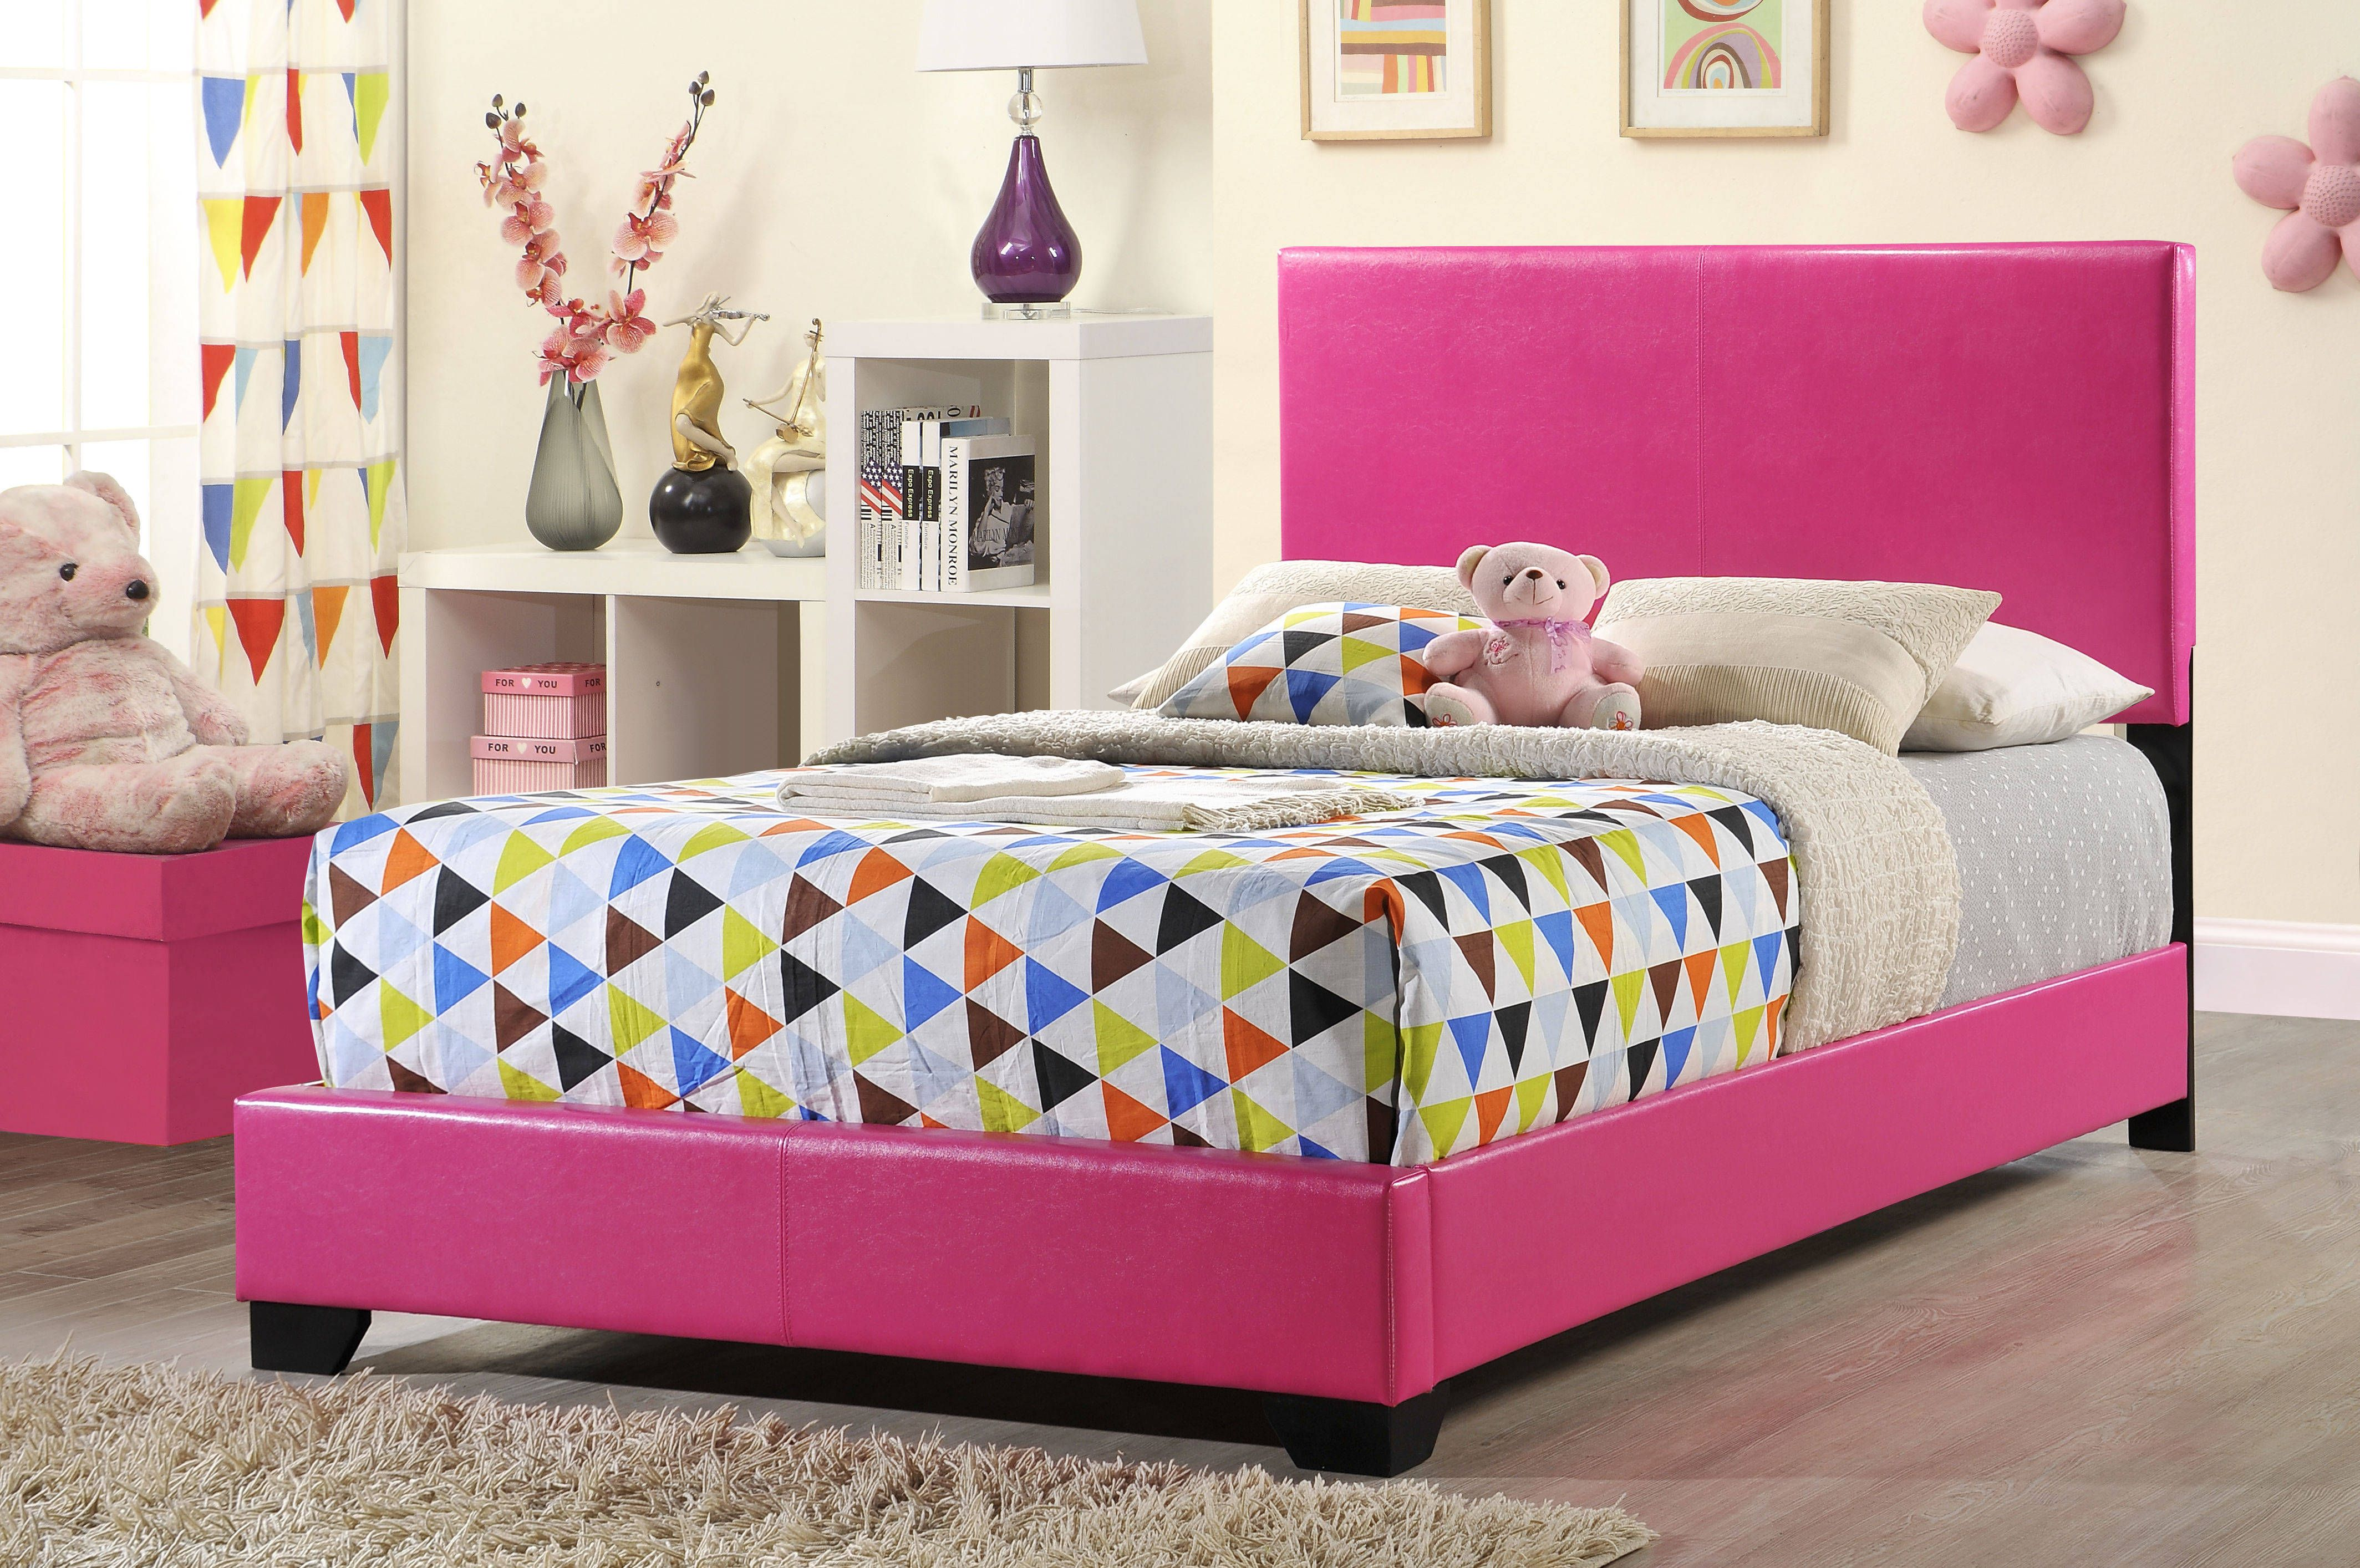 Global Furniture 8103 Pink Full Platform Bed Upholstered